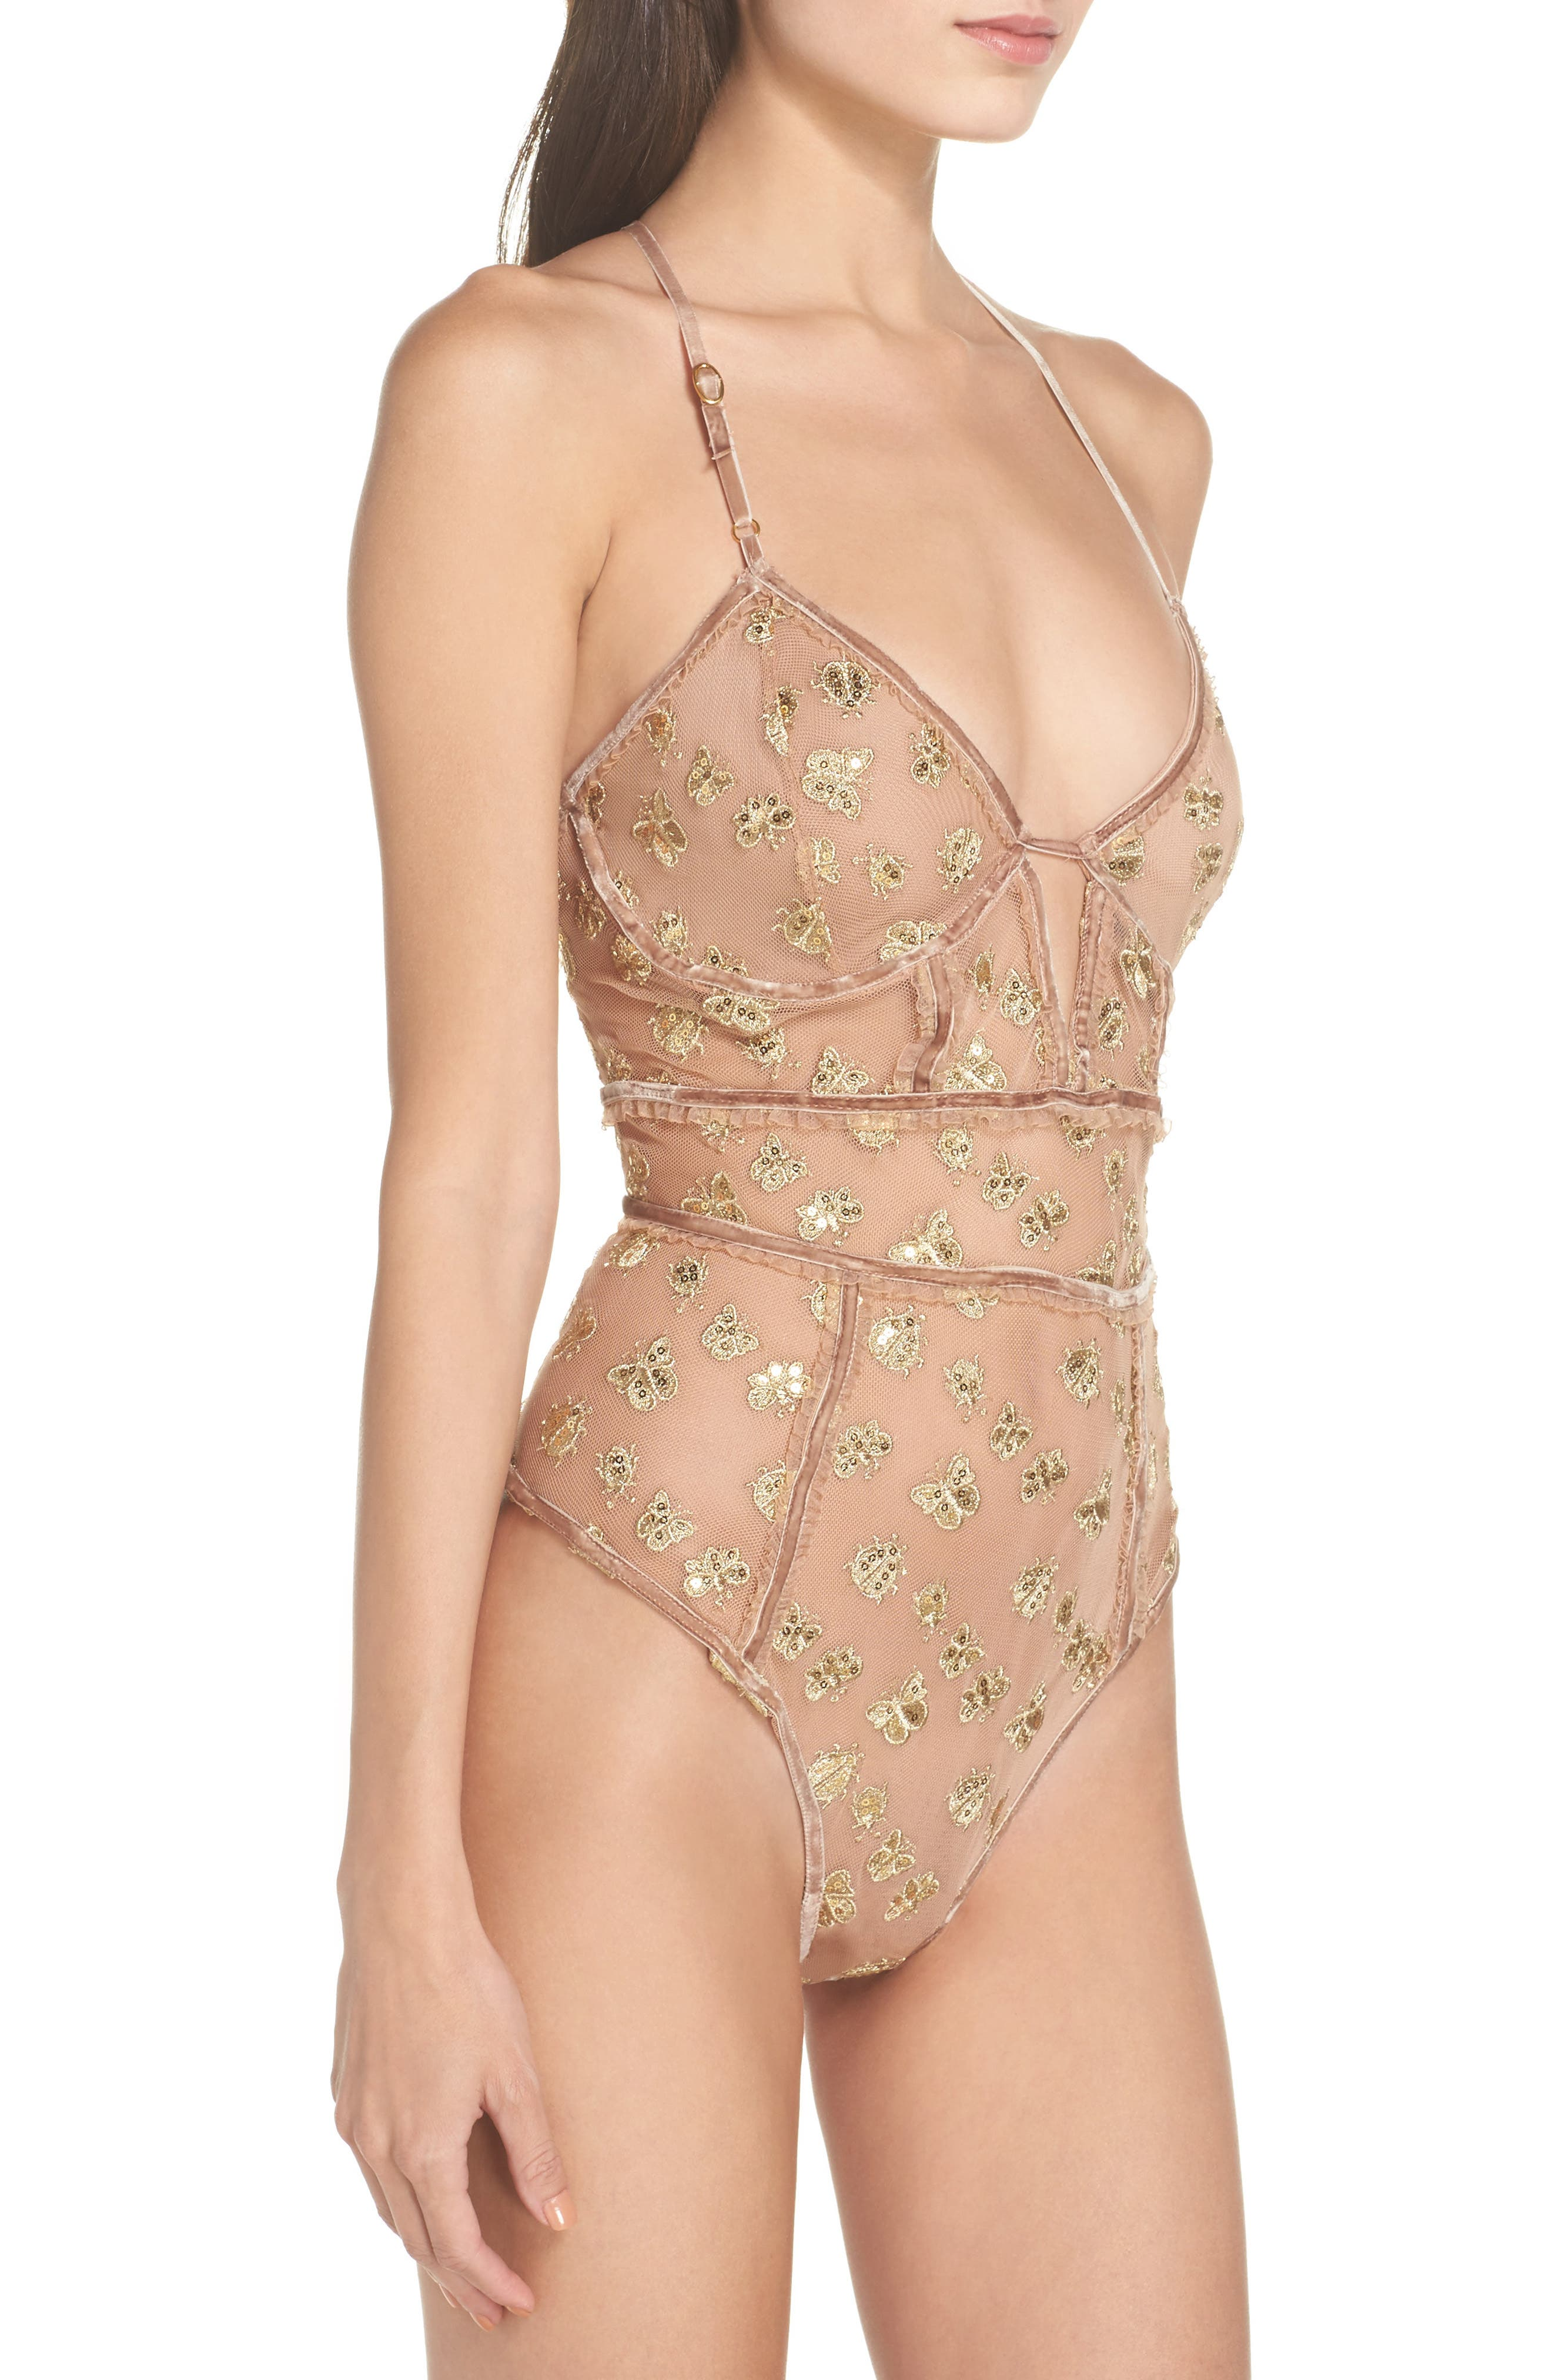 Golden Garden Embroidered Bodysuit,                             Alternate thumbnail 3, color,                             Bee